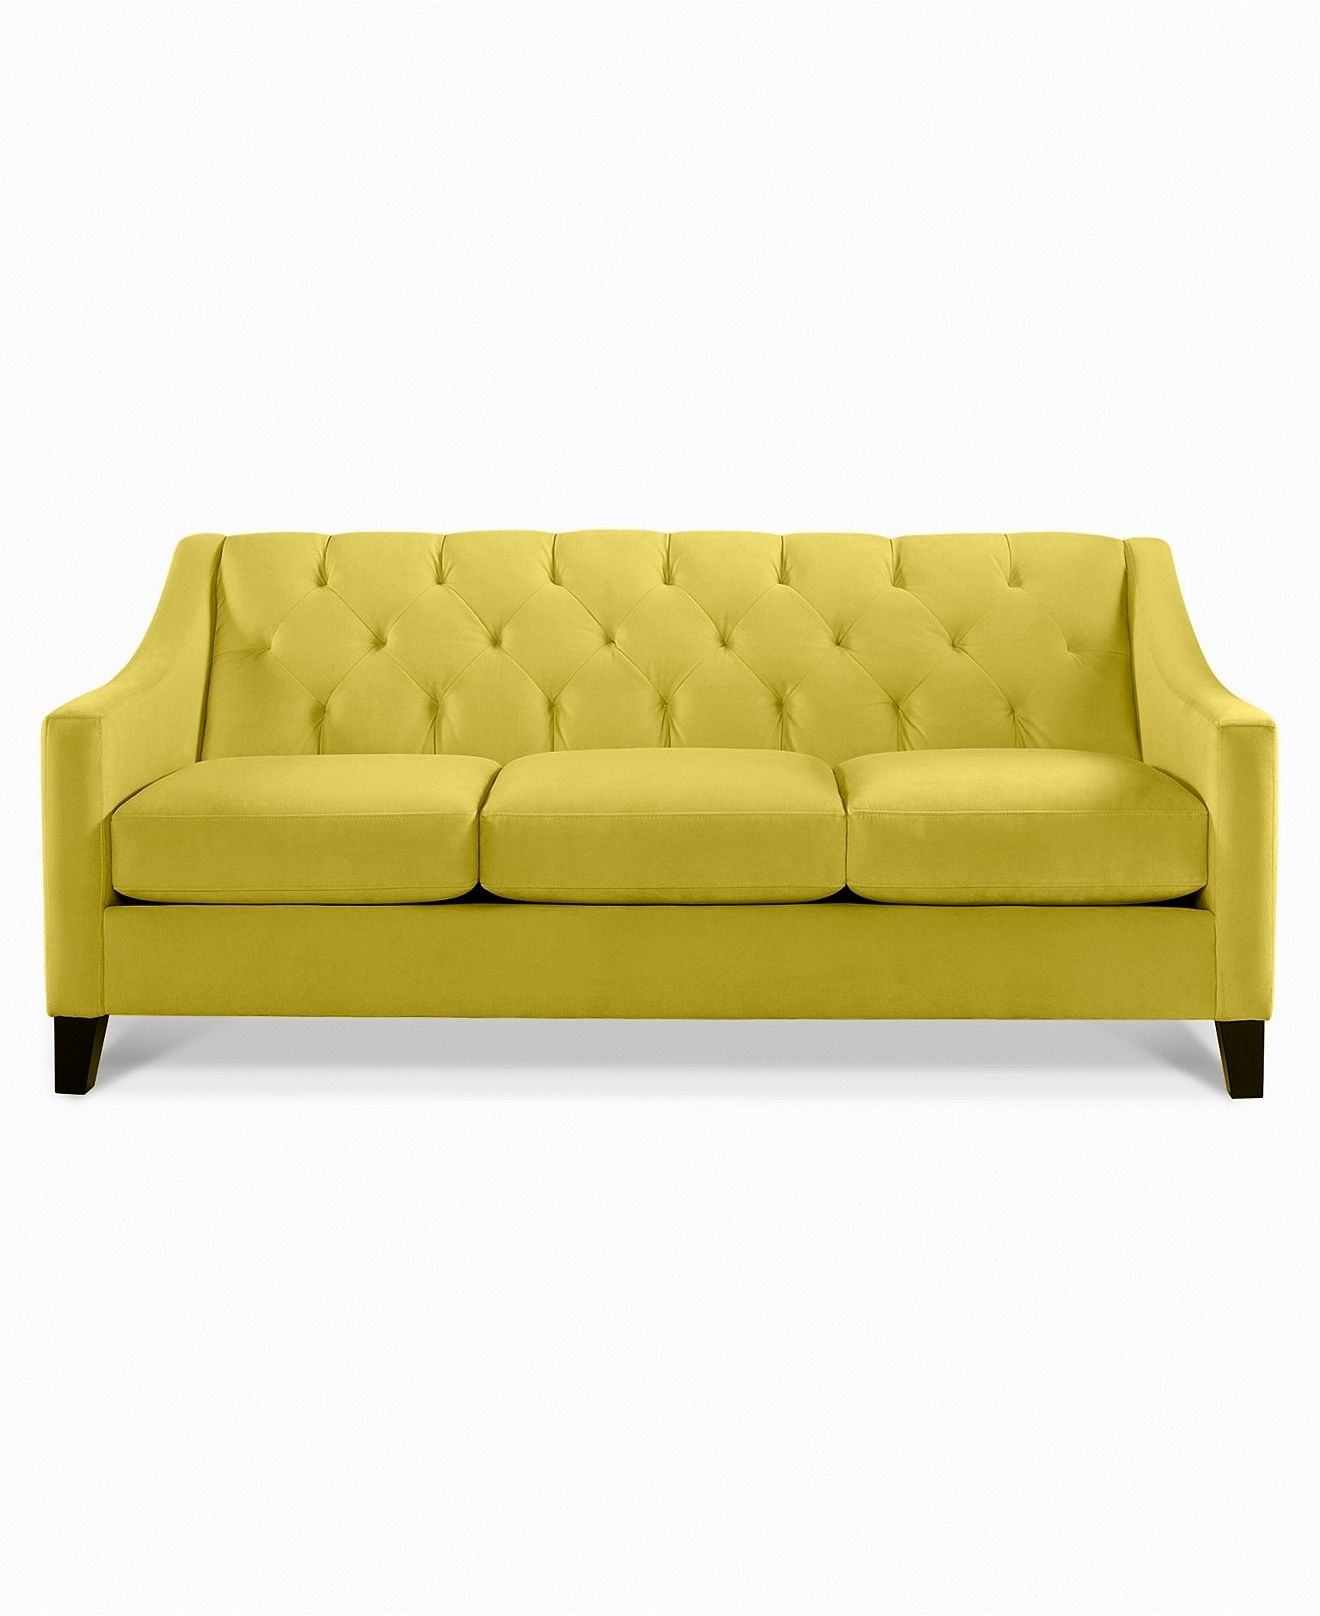 Well Known Furniture : Button Tufted Fabric Sofa Sofa Dallas Furniture Ottawa For Dufresne Sectional Sofas (View 15 of 15)